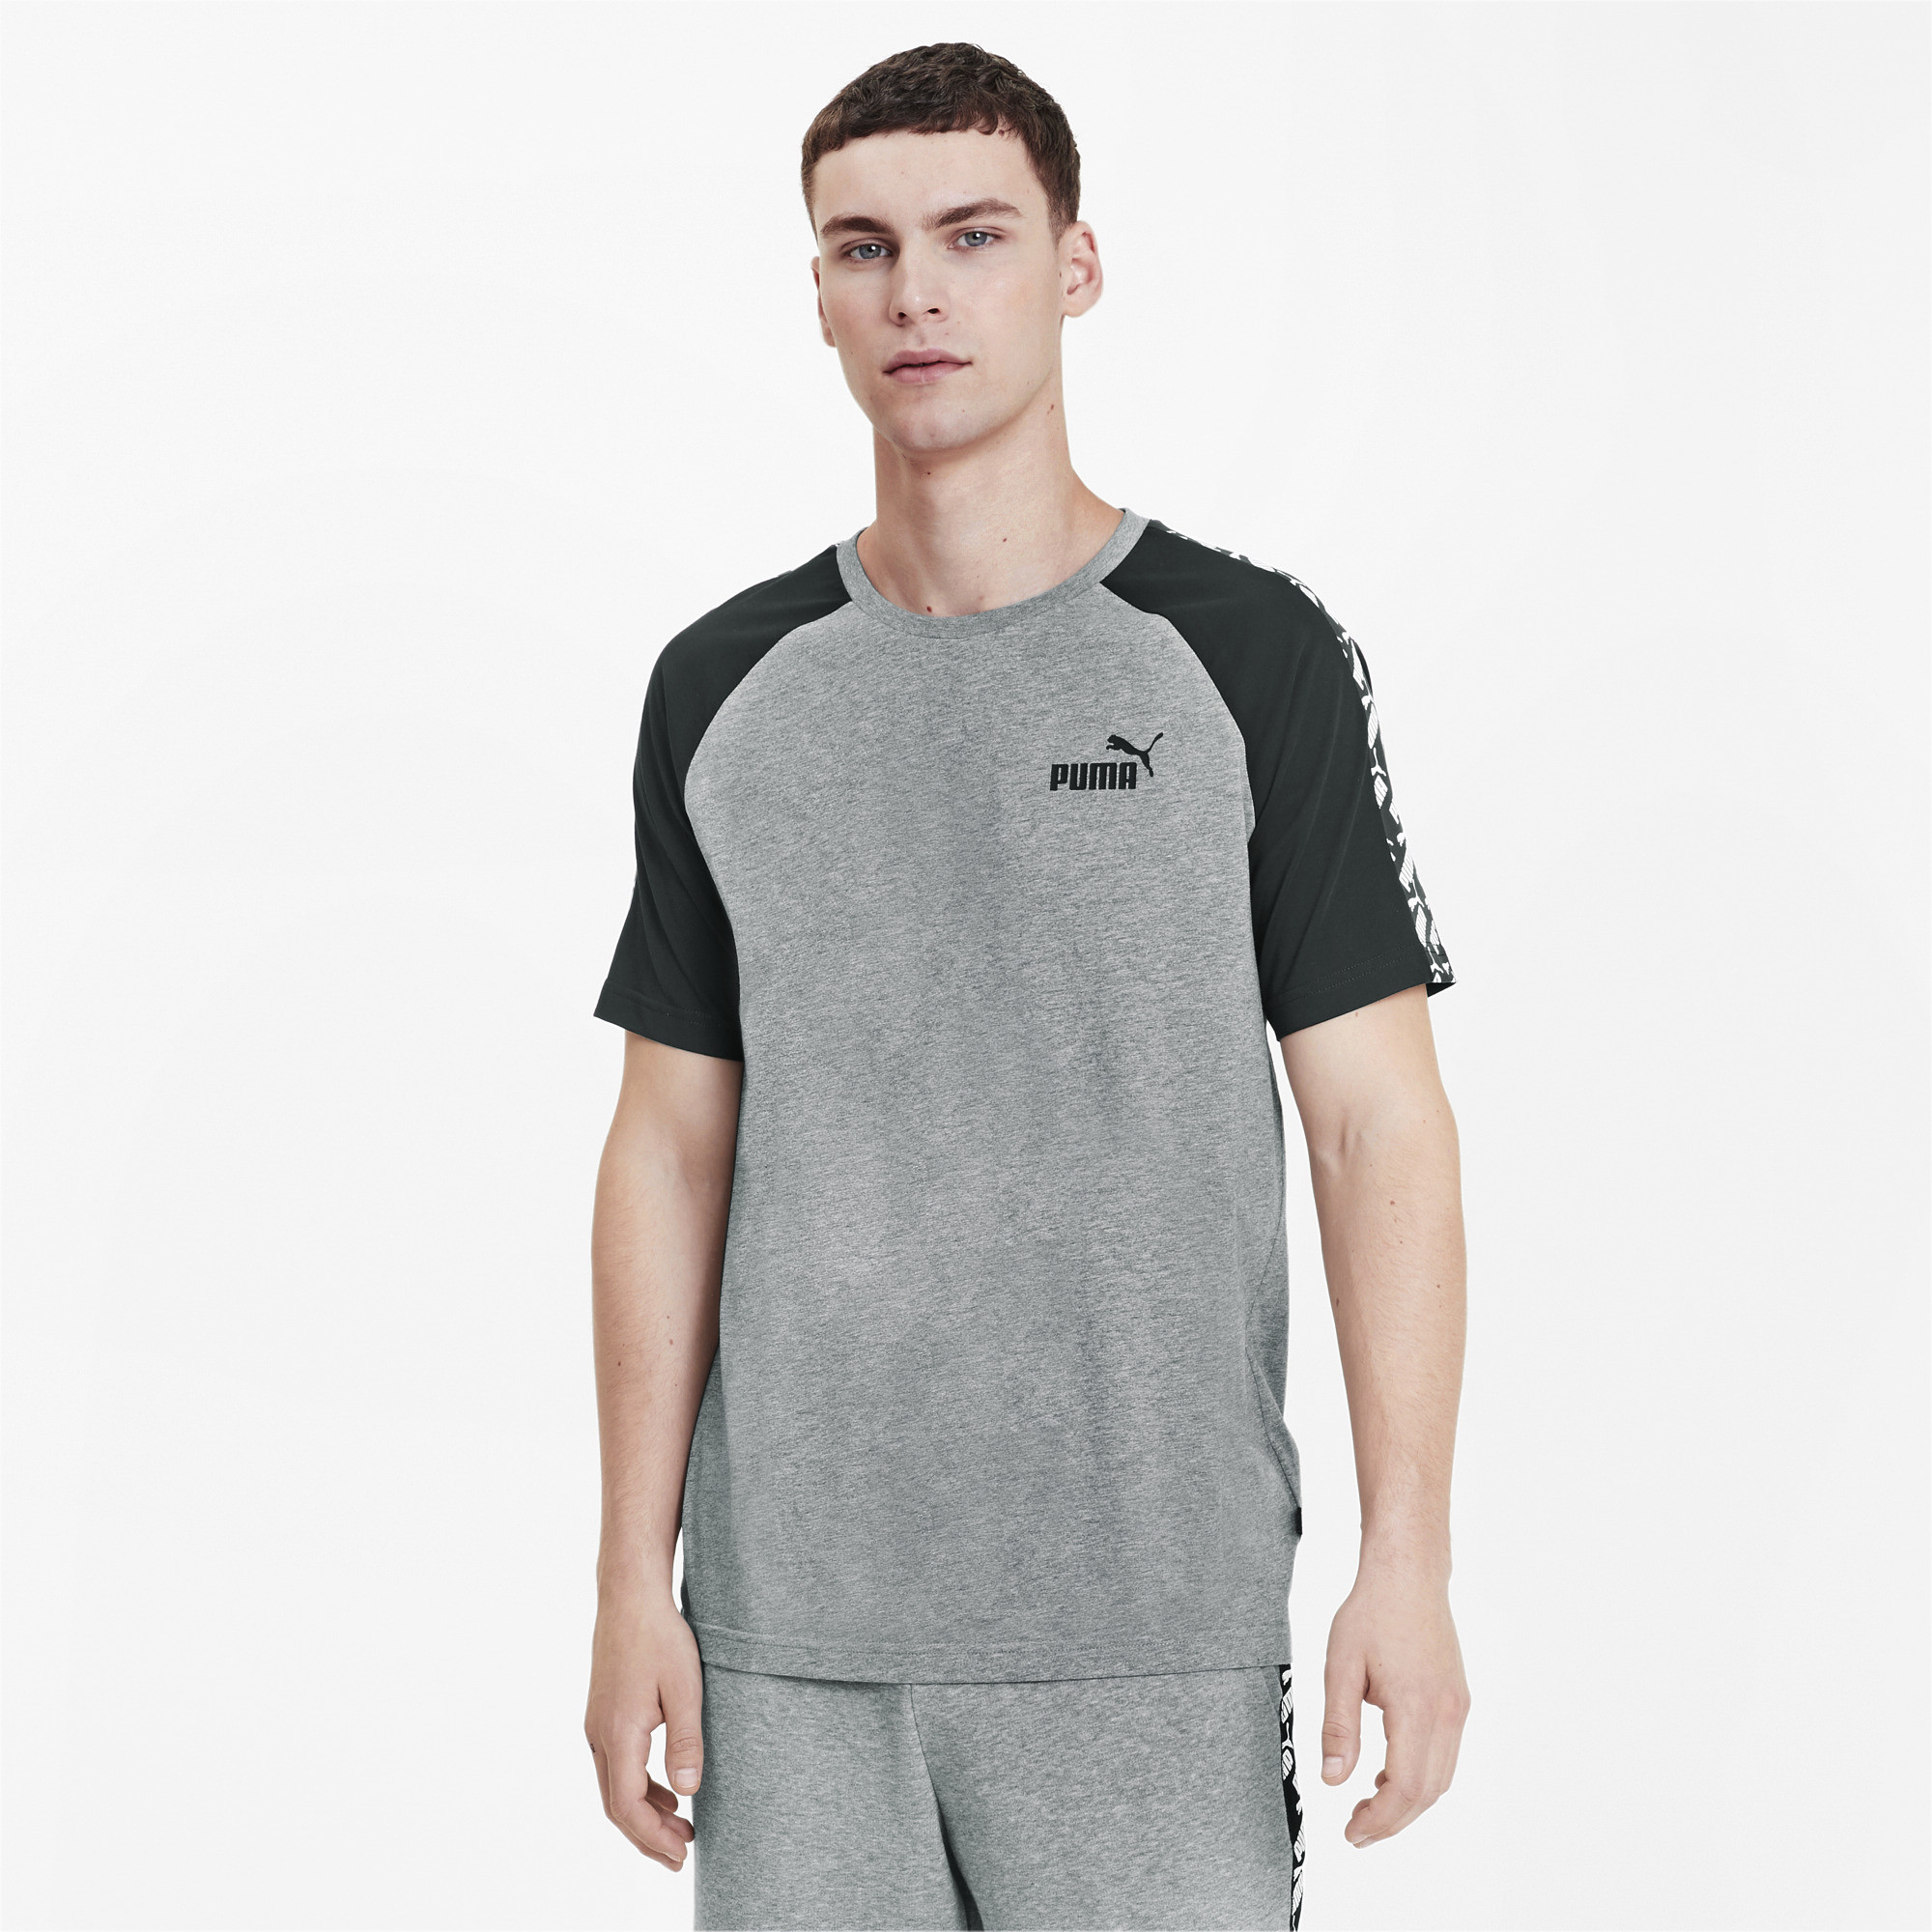 PUMA-Amplified-Men-039-s-Raglan-Tee-Men-Tee-Basics thumbnail 8